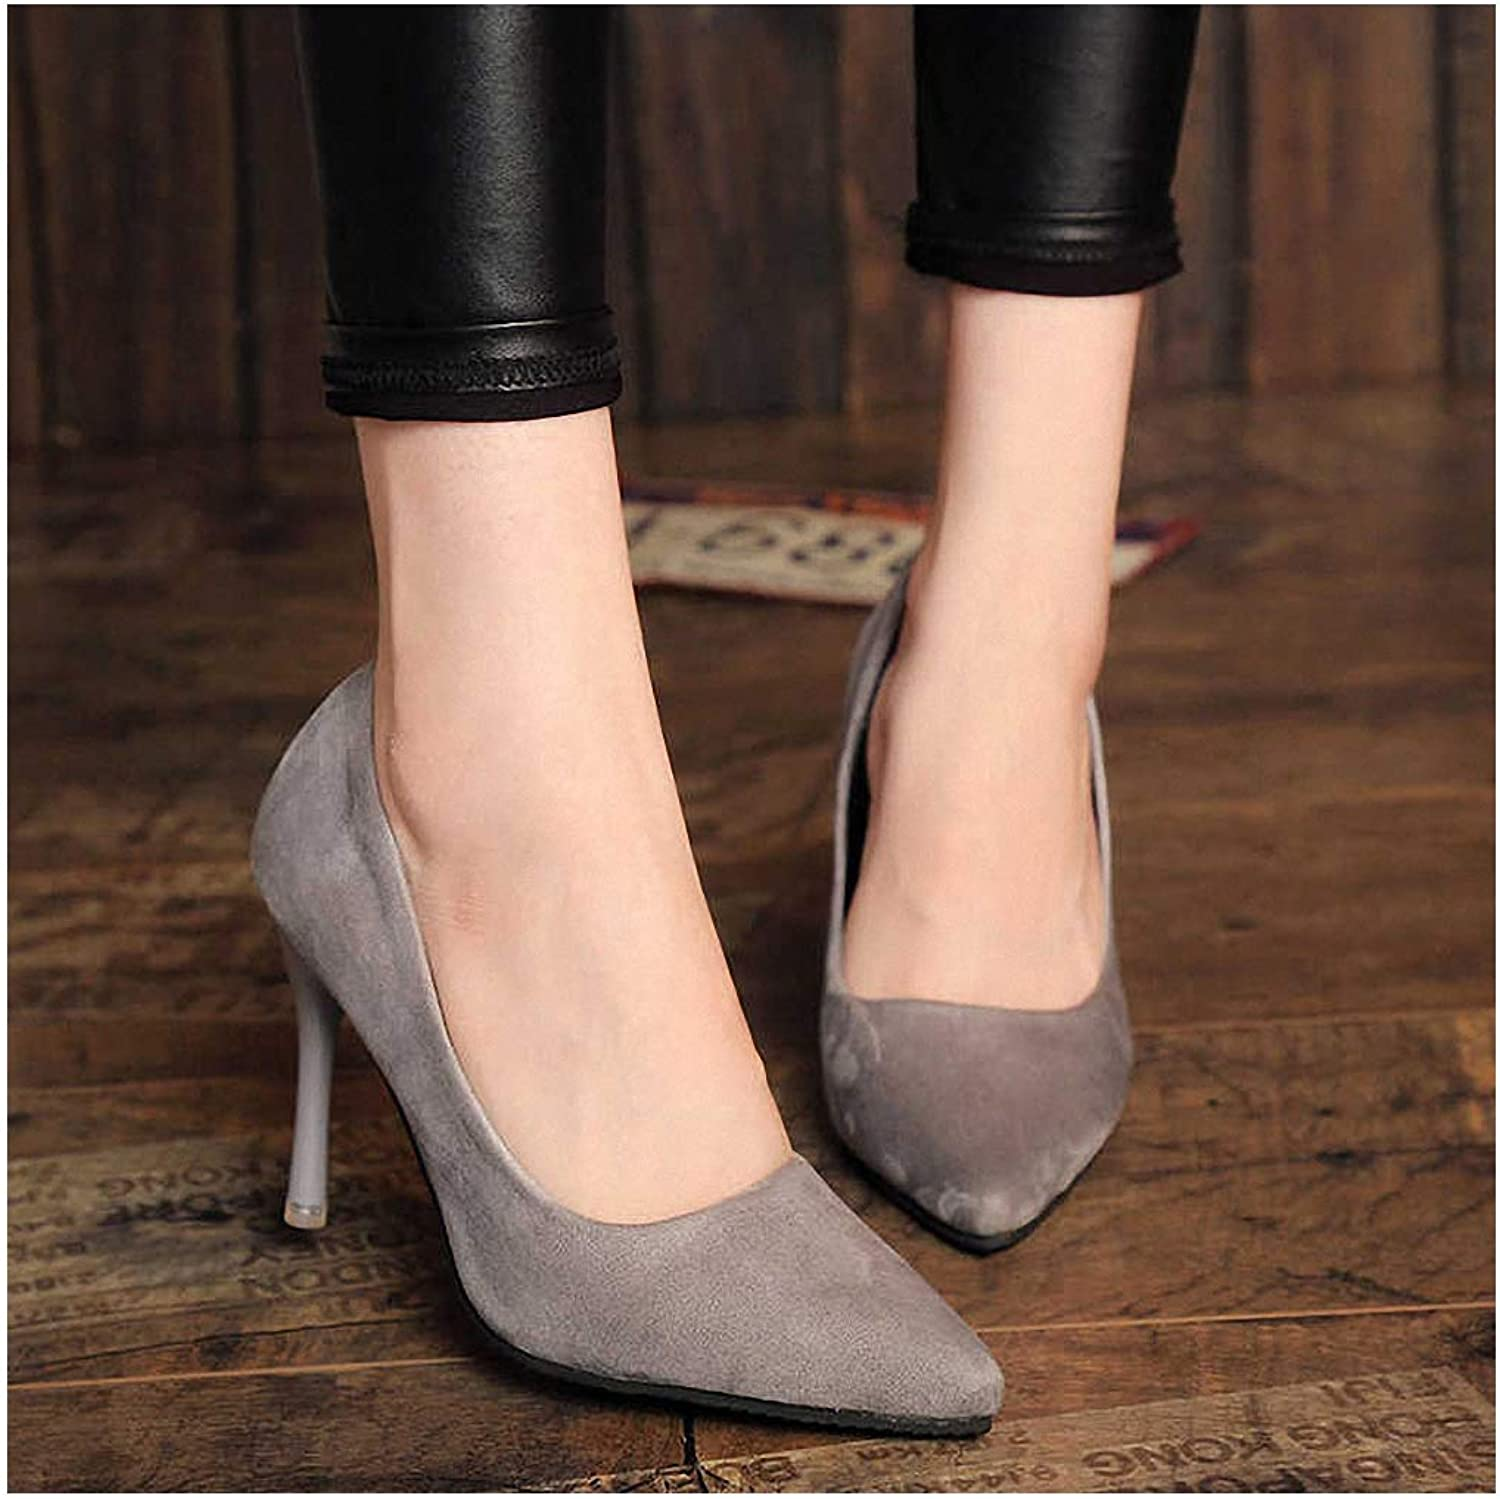 Tebapi Womens High-Heeled Pumps shoes High Heels Women Pumps Thin Heel Classic White Red Nede Beige Sexy Prom Wedding shoes bluee Red Wine